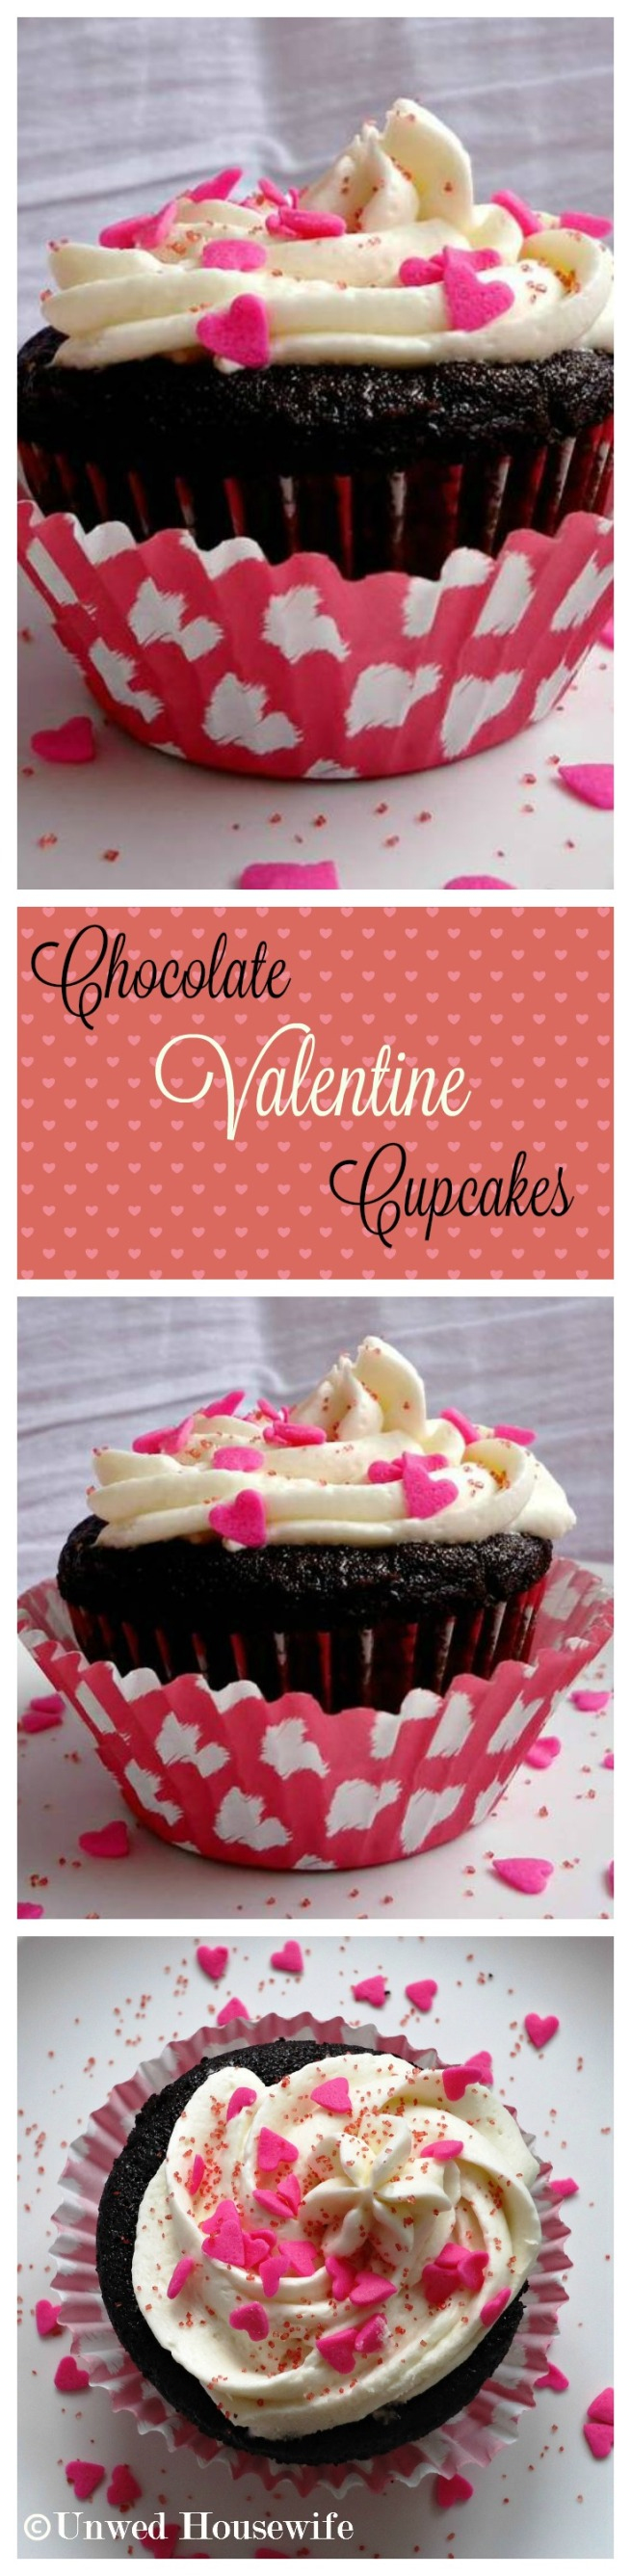 Chocolate Valentine Cupcakes Pinterest